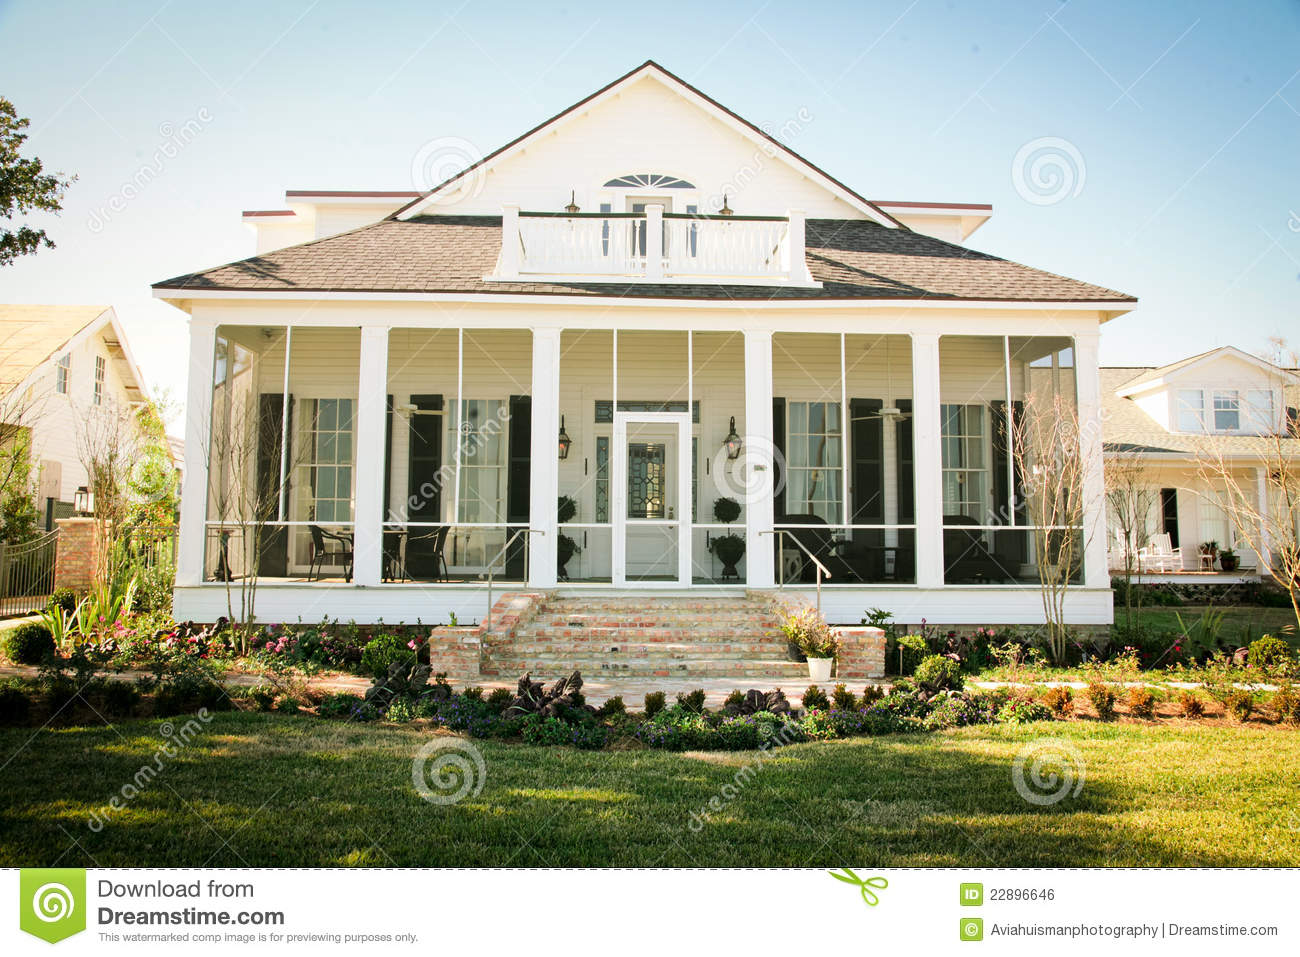 Southern style suburban american home royalty free stock image image 22896646 - American home decor property ...